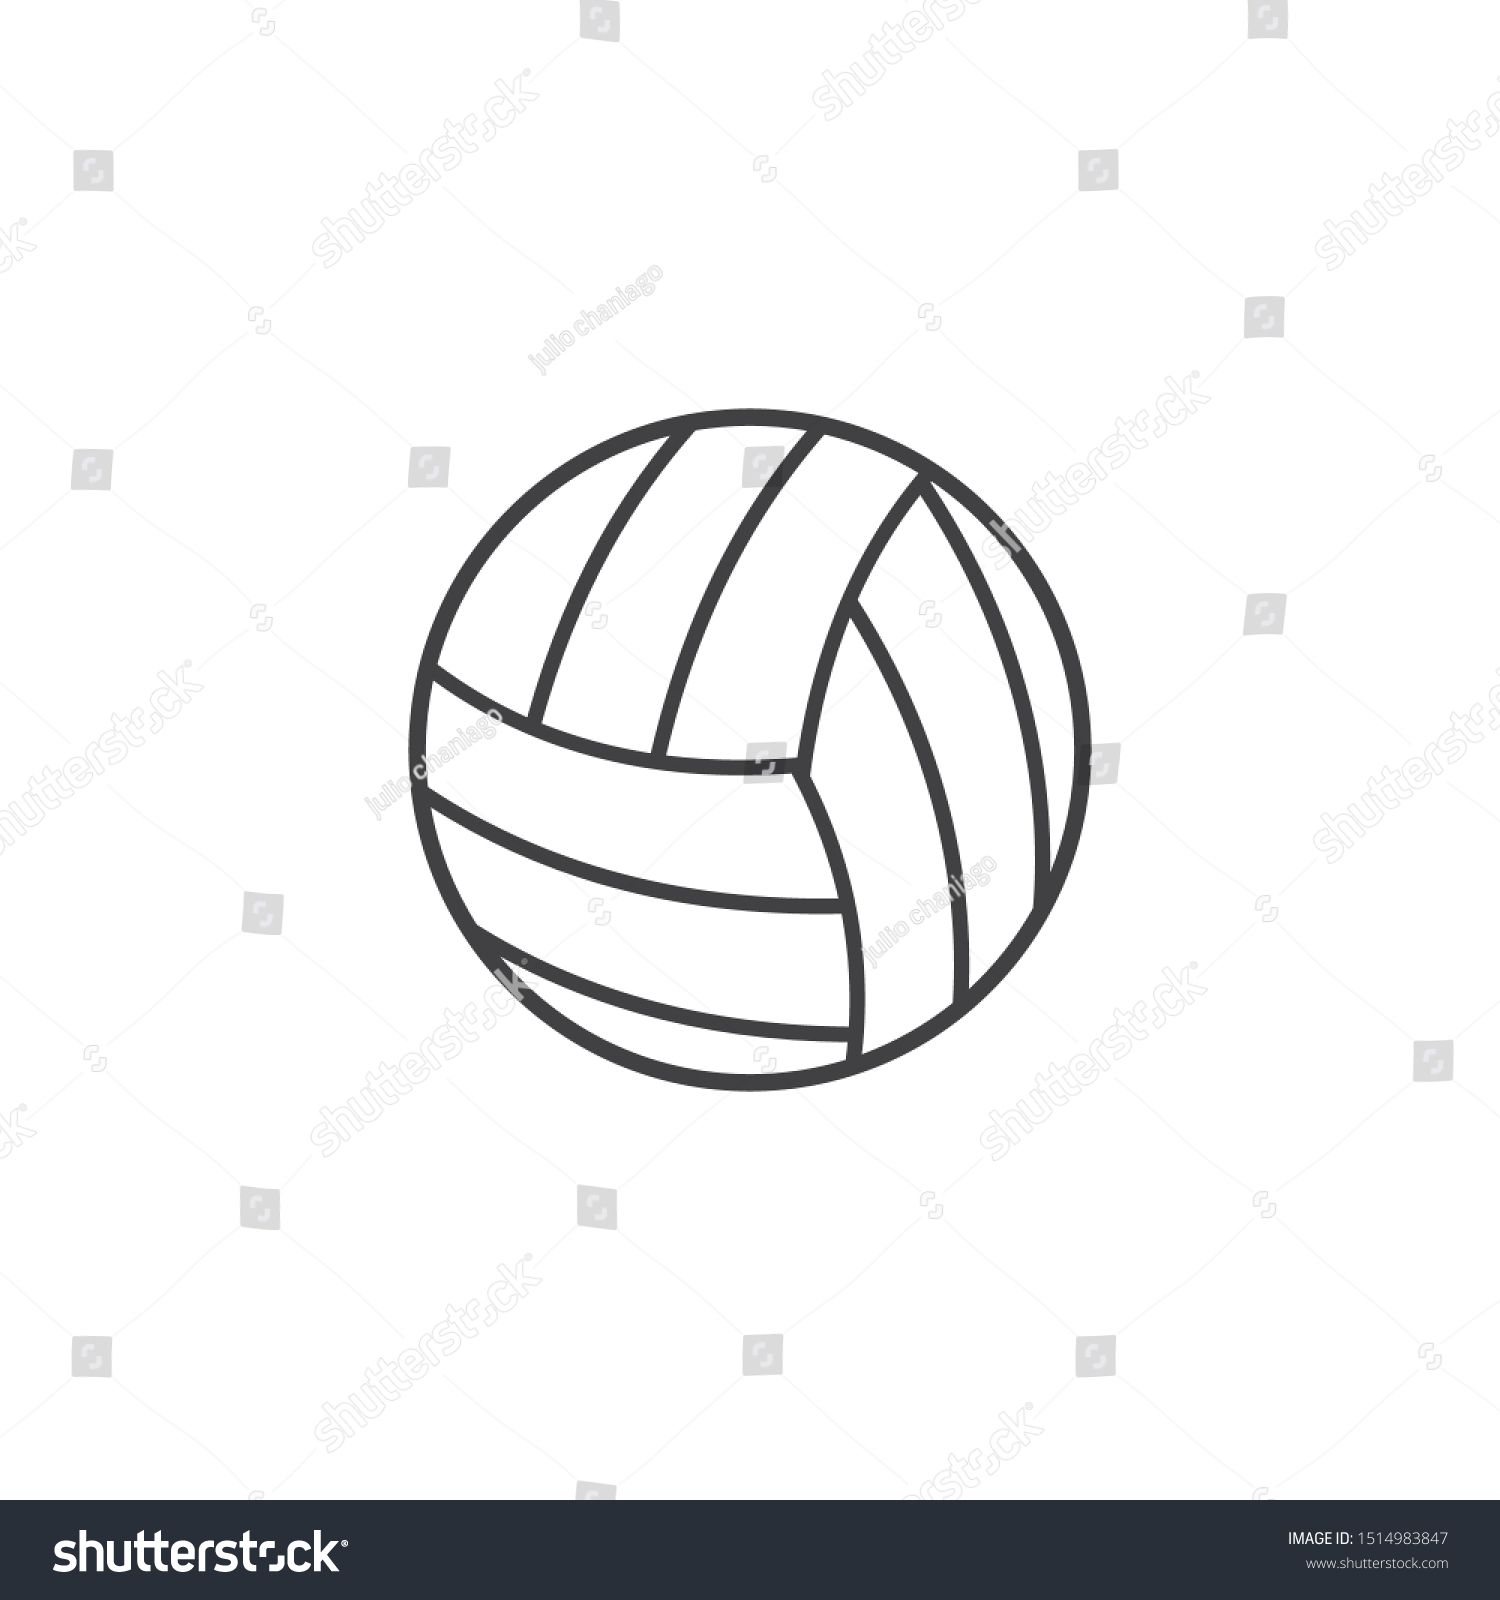 Volley Ball Vector Icon Illustration Design N Ad Ad Vector Ball Volley Designn In 2020 Vector Icons Illustration Illustration Design Modern Graphic Design